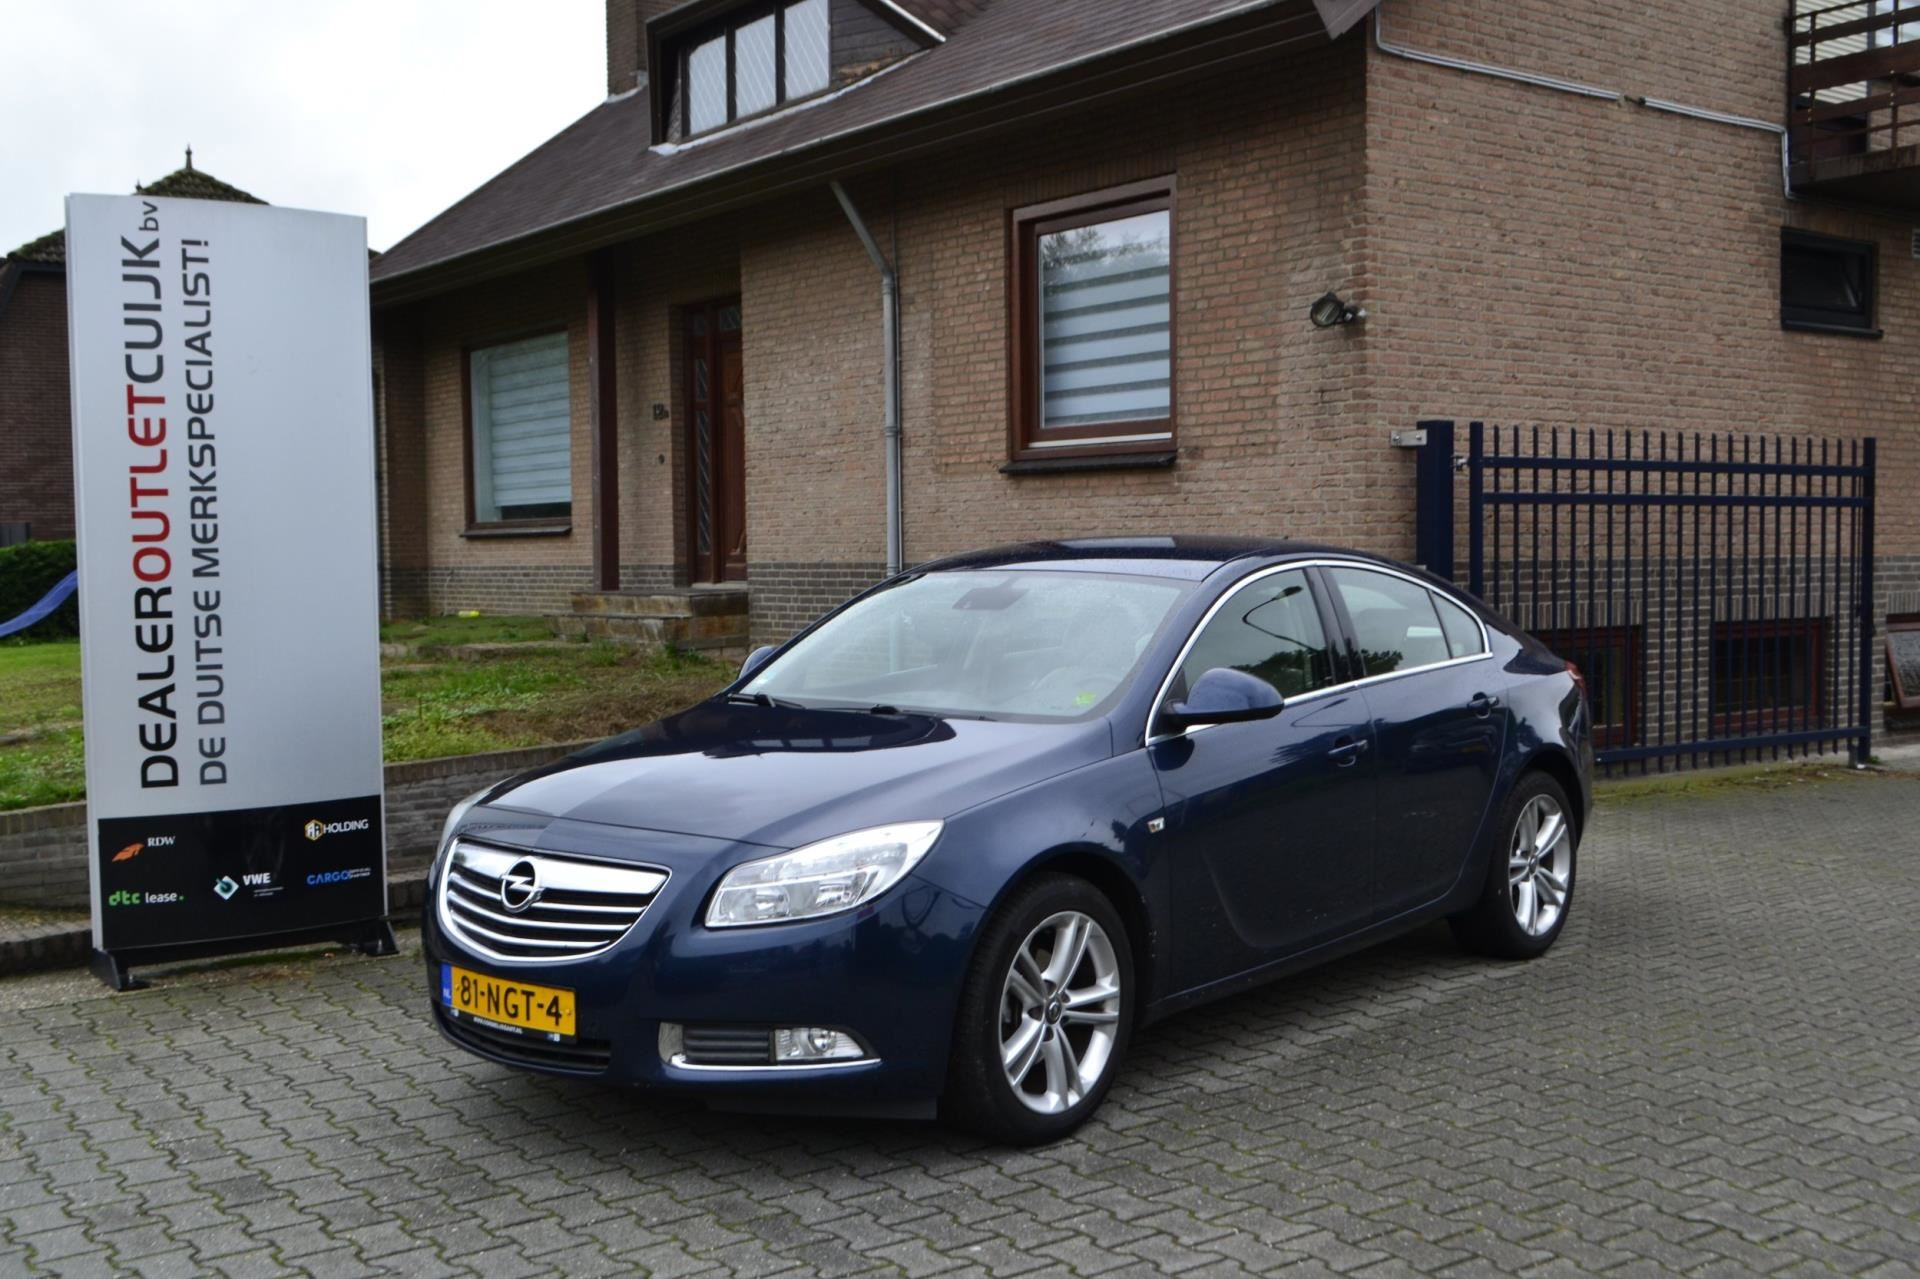 Opel Insignia occasion - Dealer Outlet Cuijk b.v.